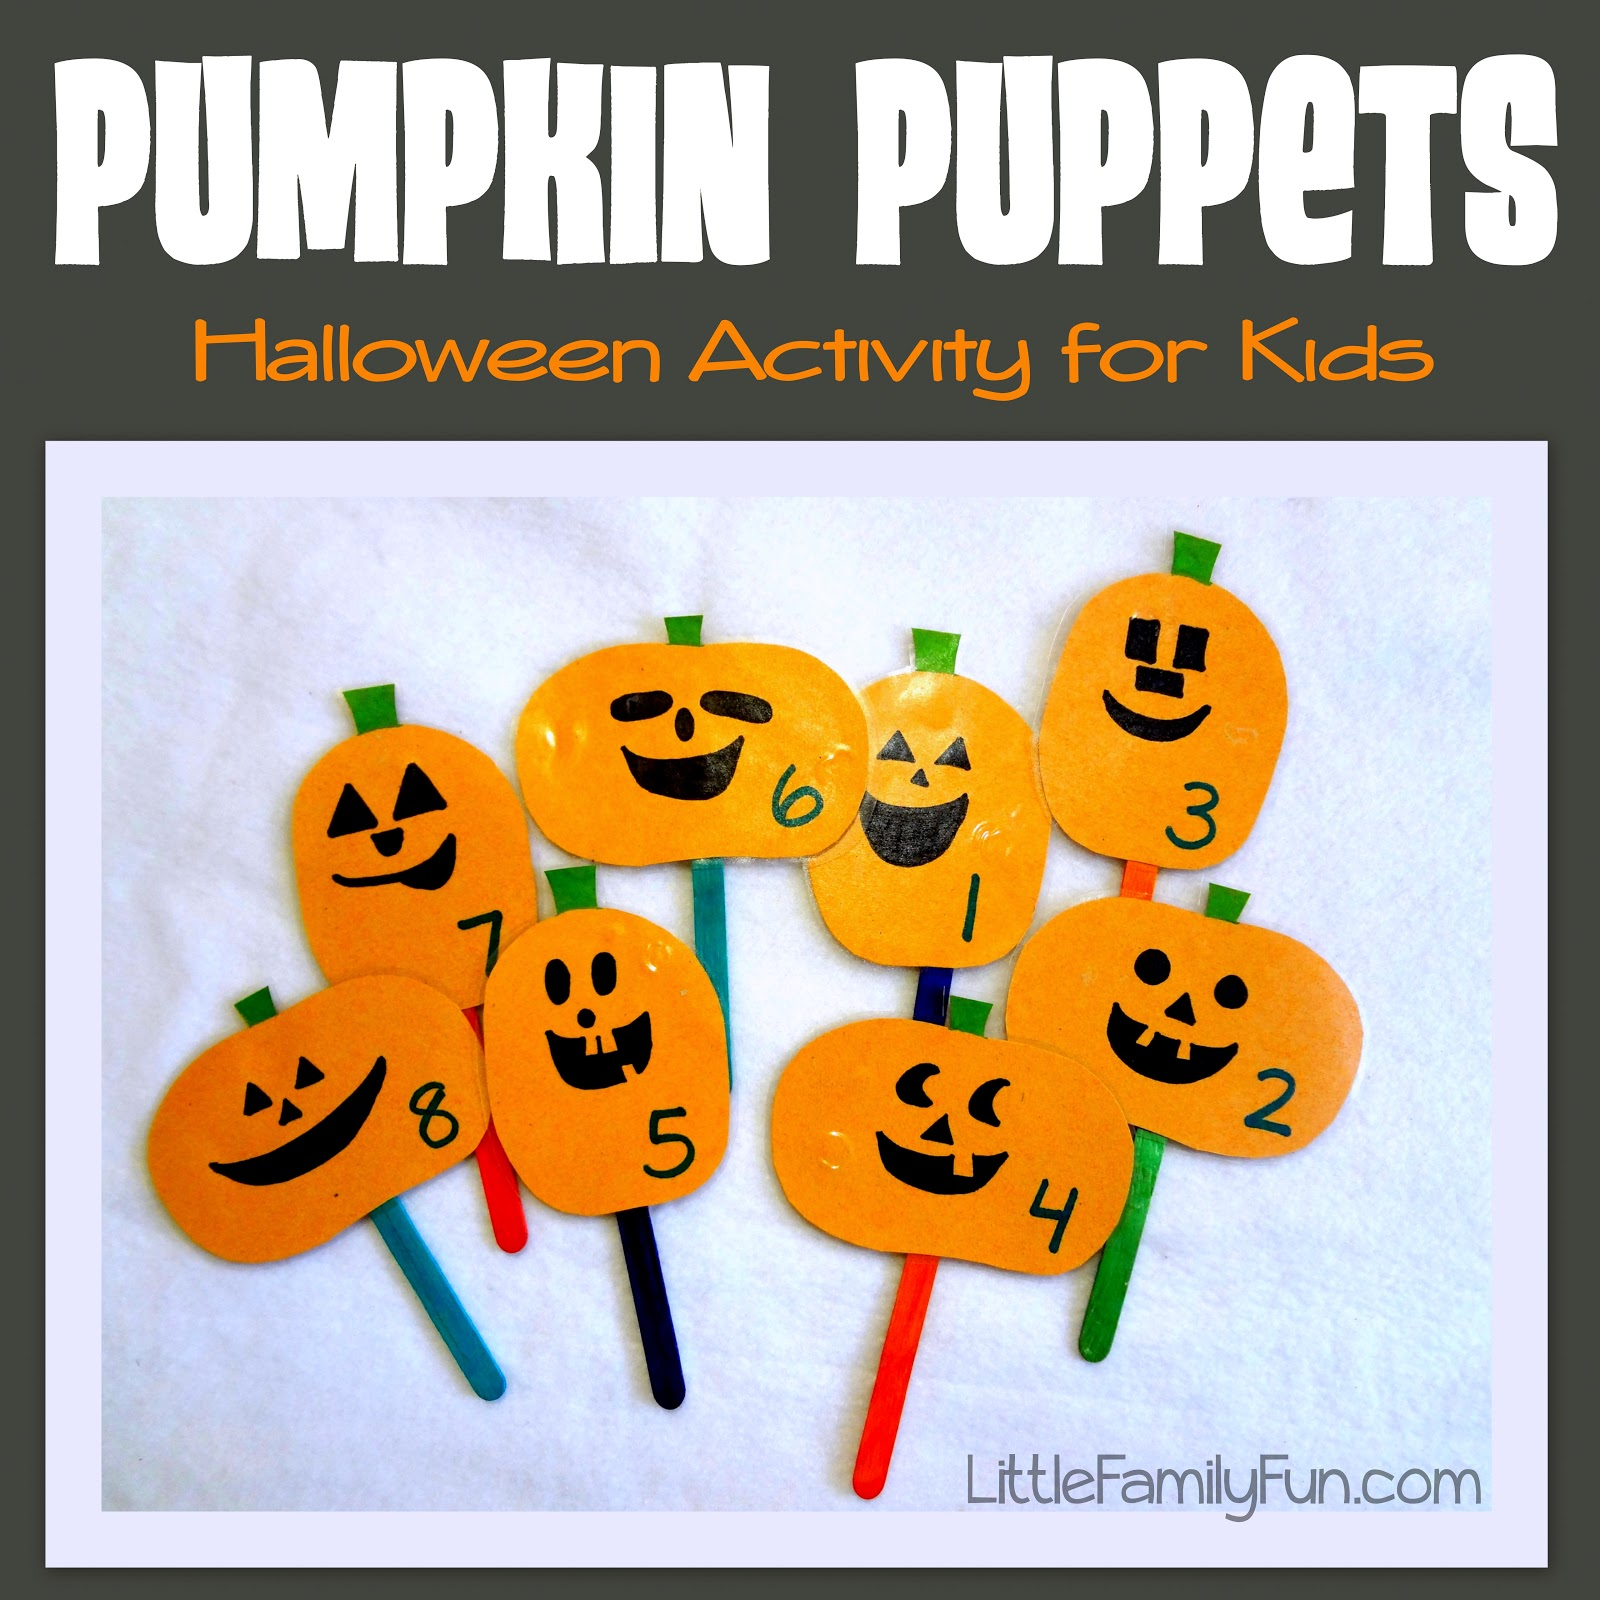 Little Family Fun Pumpkin Puppets